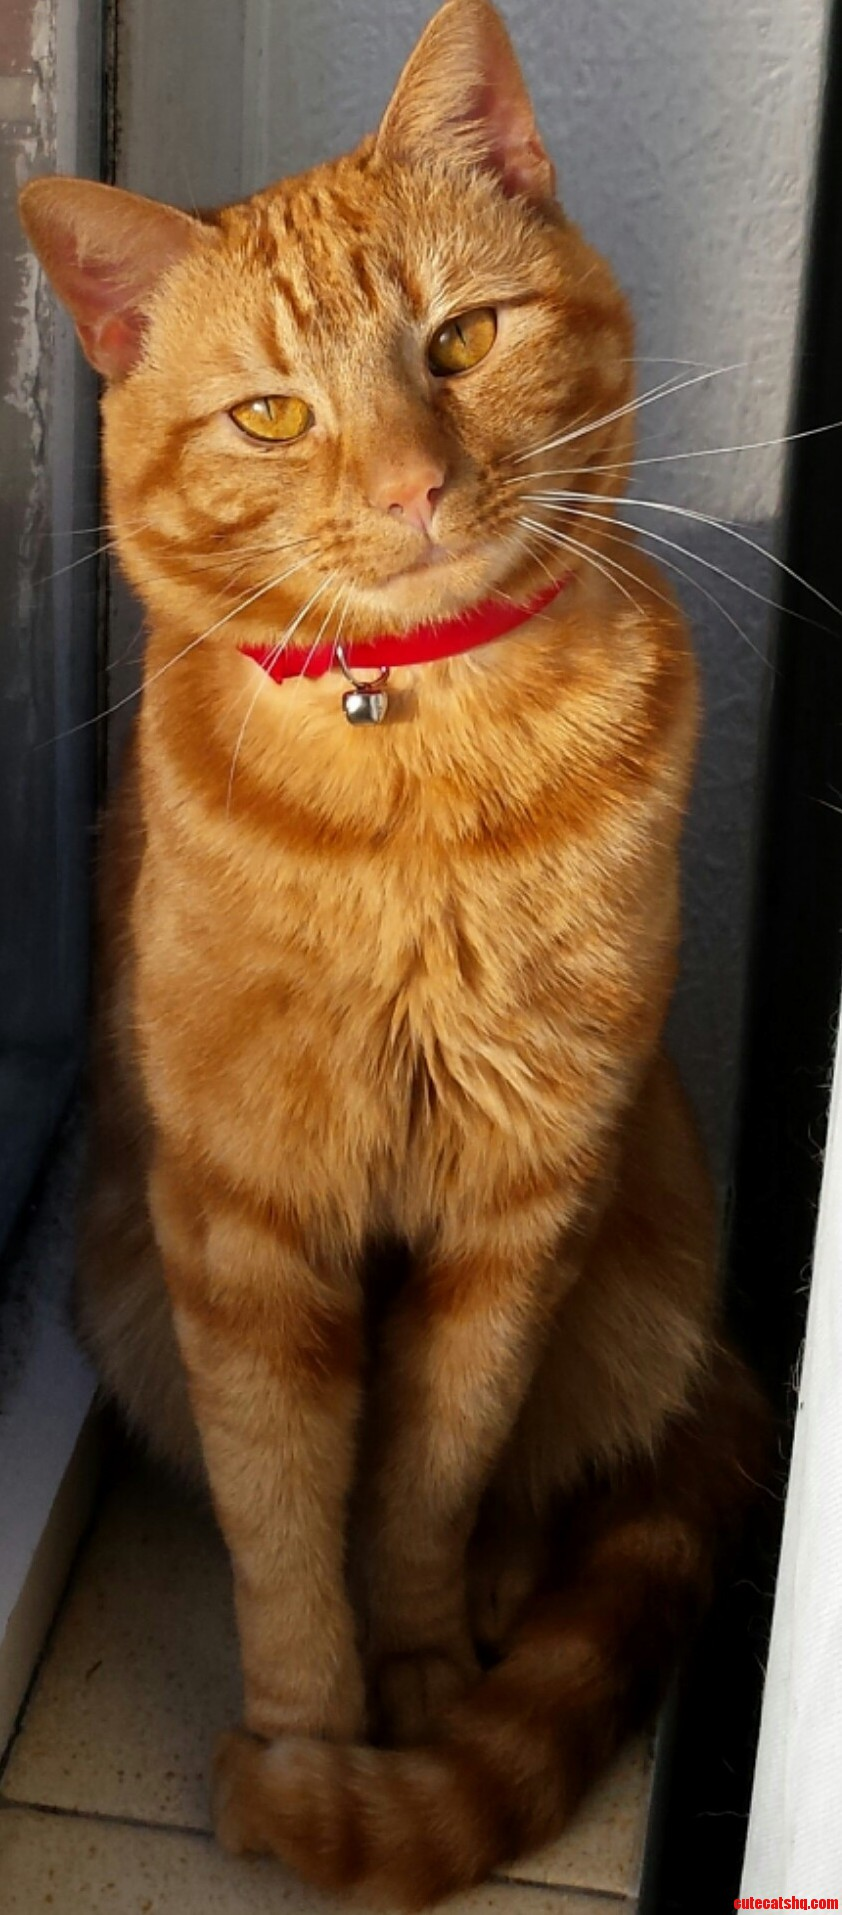 My Little Ginger Dude Hanging Out On The Windowsill.